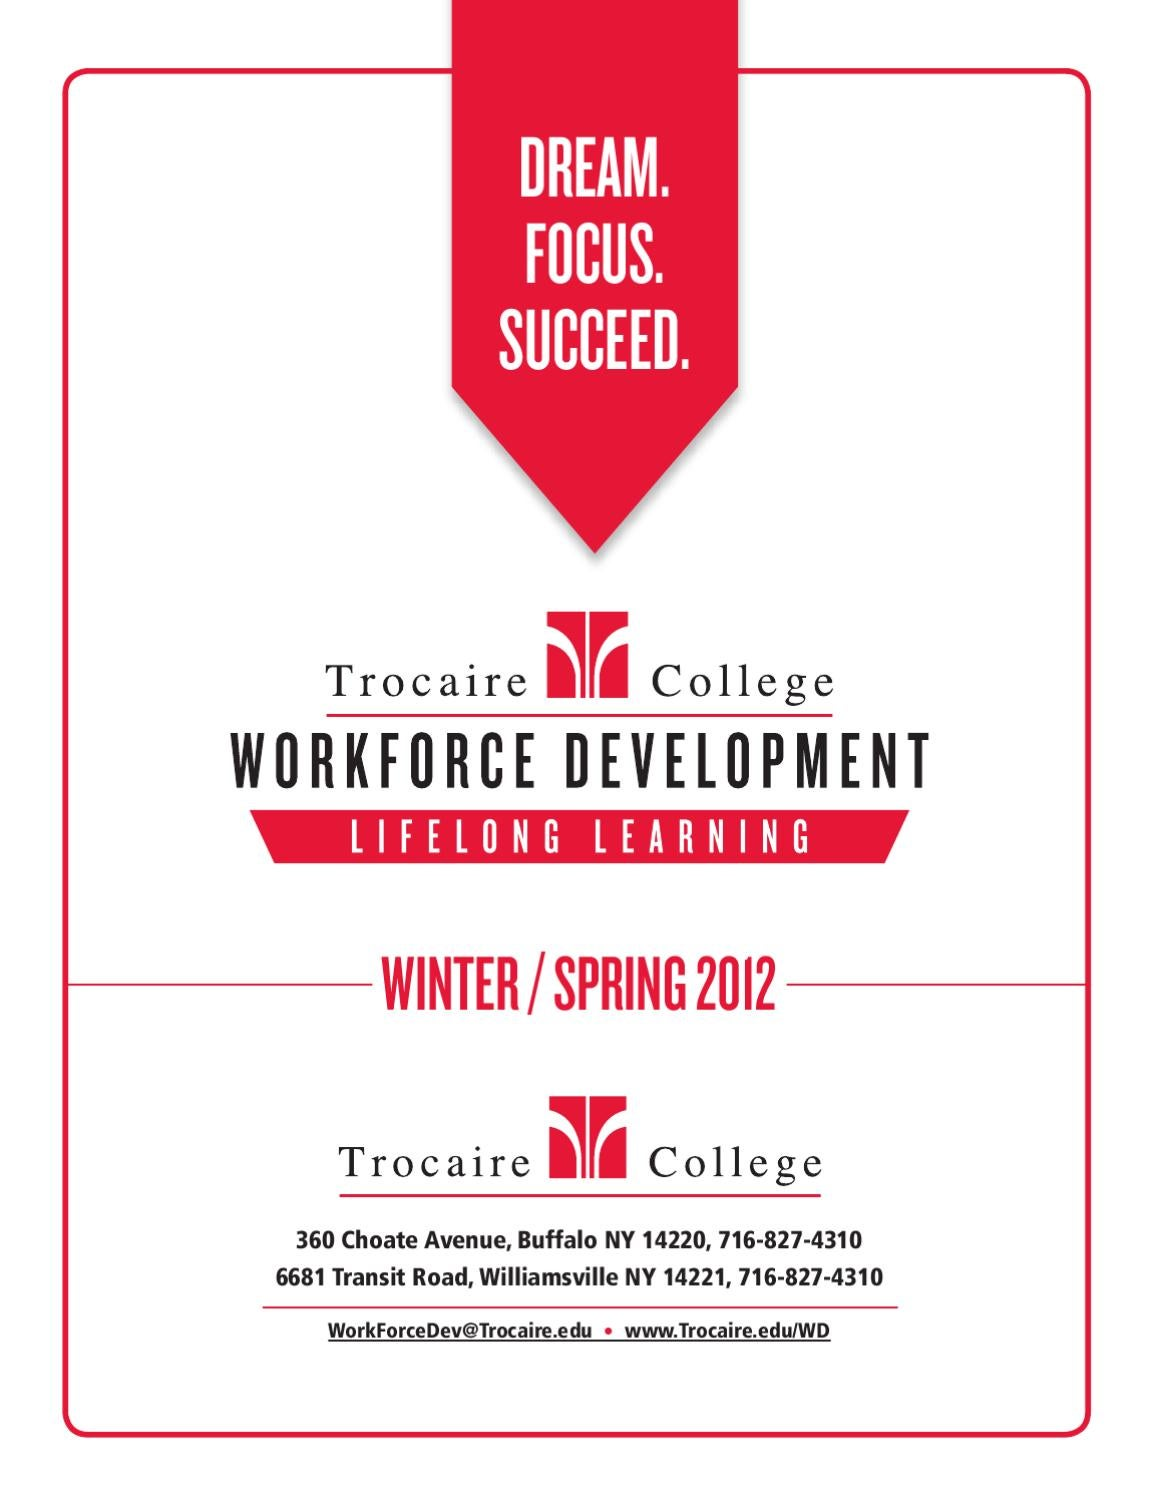 Winterspring 2012 workforce development catalog by trocaire winterspring 2012 workforce development catalog by trocaire college issuu xflitez Choice Image